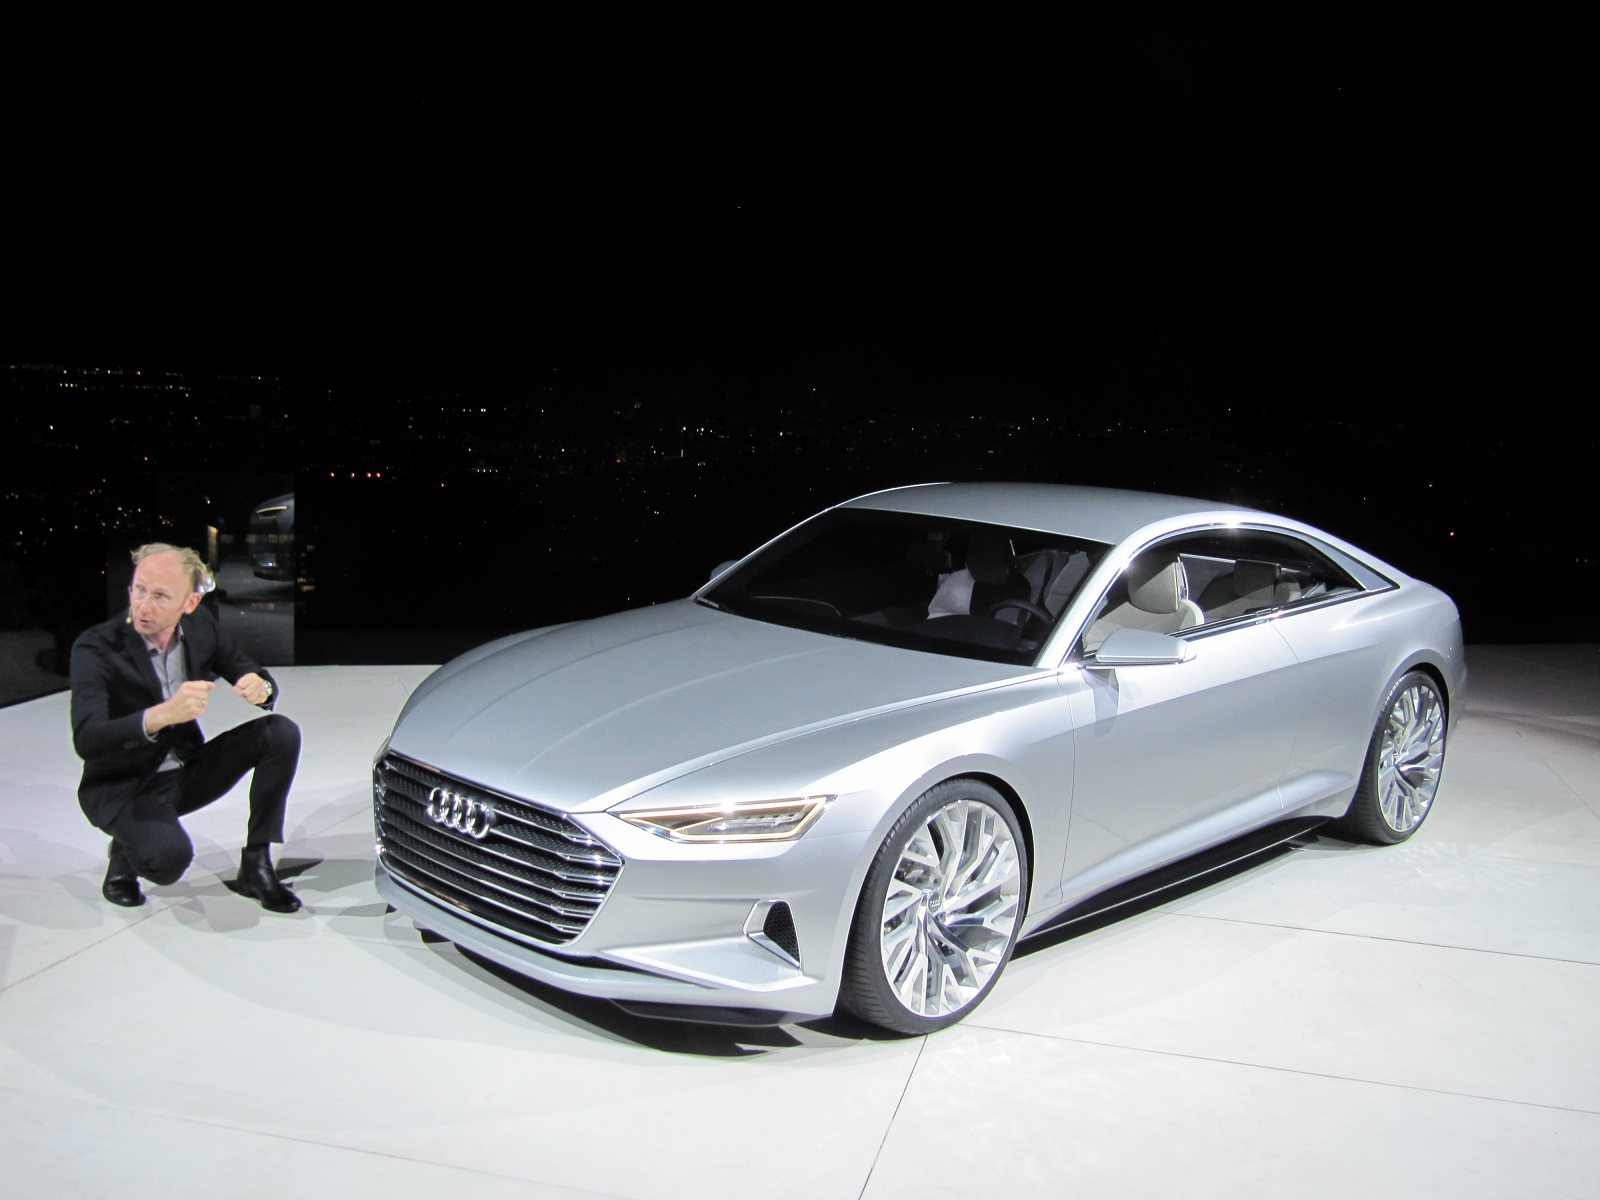 Audi Prologue Concept Revealed, Presages New Look For Brand